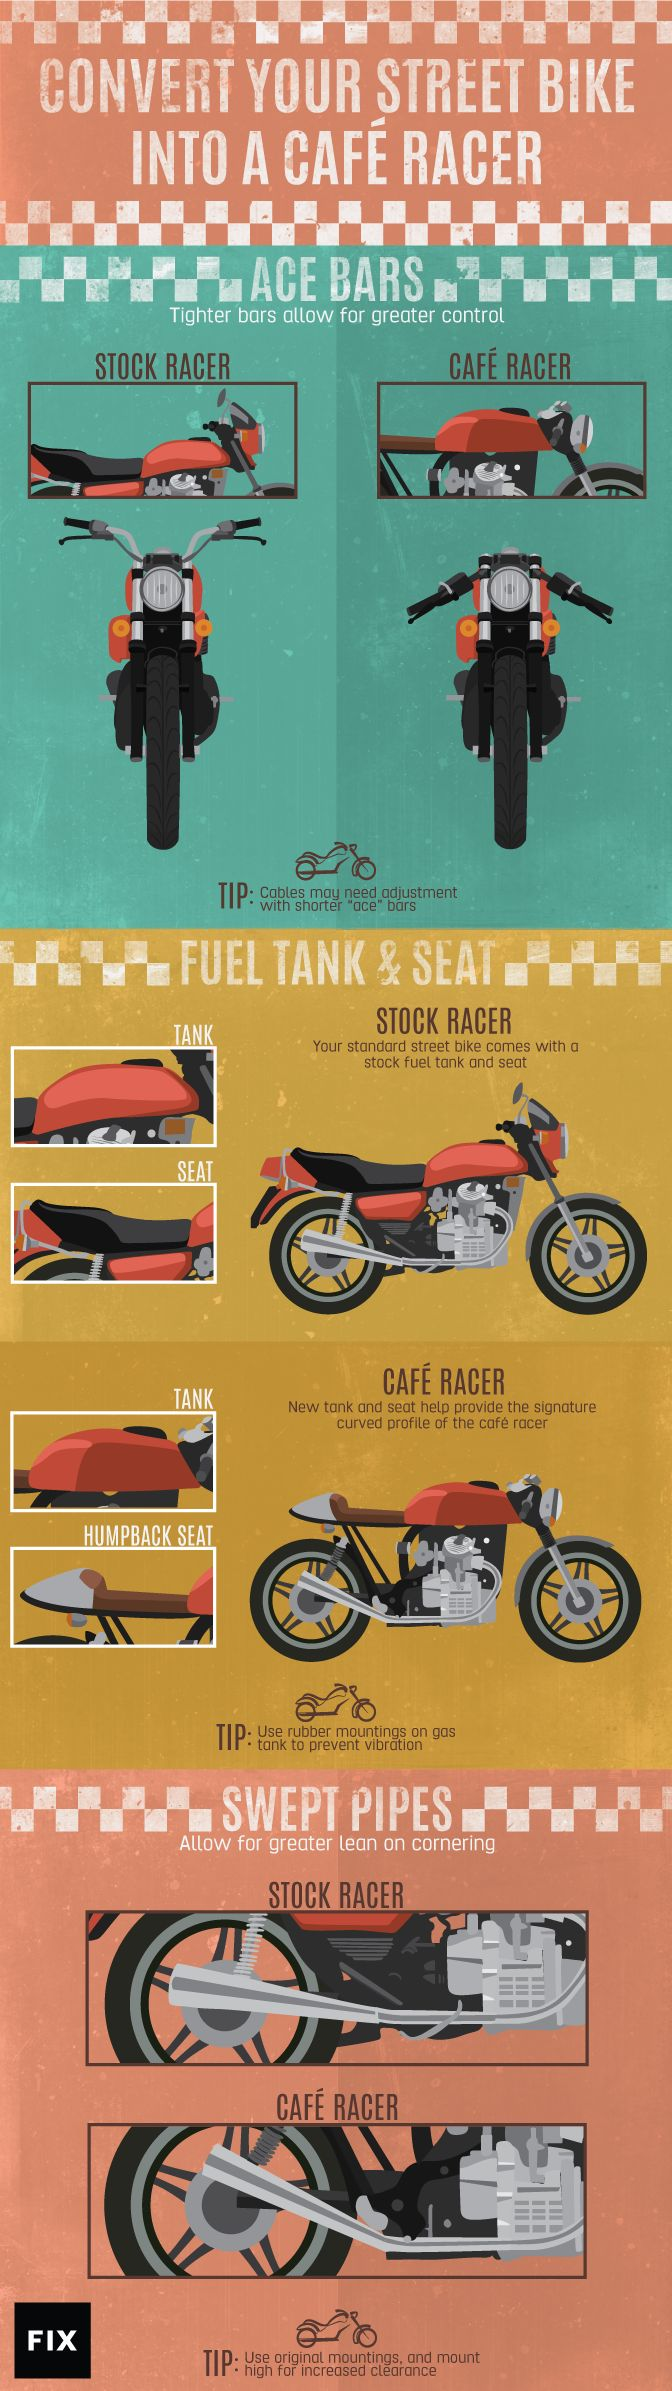 Changing the fuel tank, seat, and handle bars can transform your stock street bike into an aggressive café style racer with a curved, mean stance.